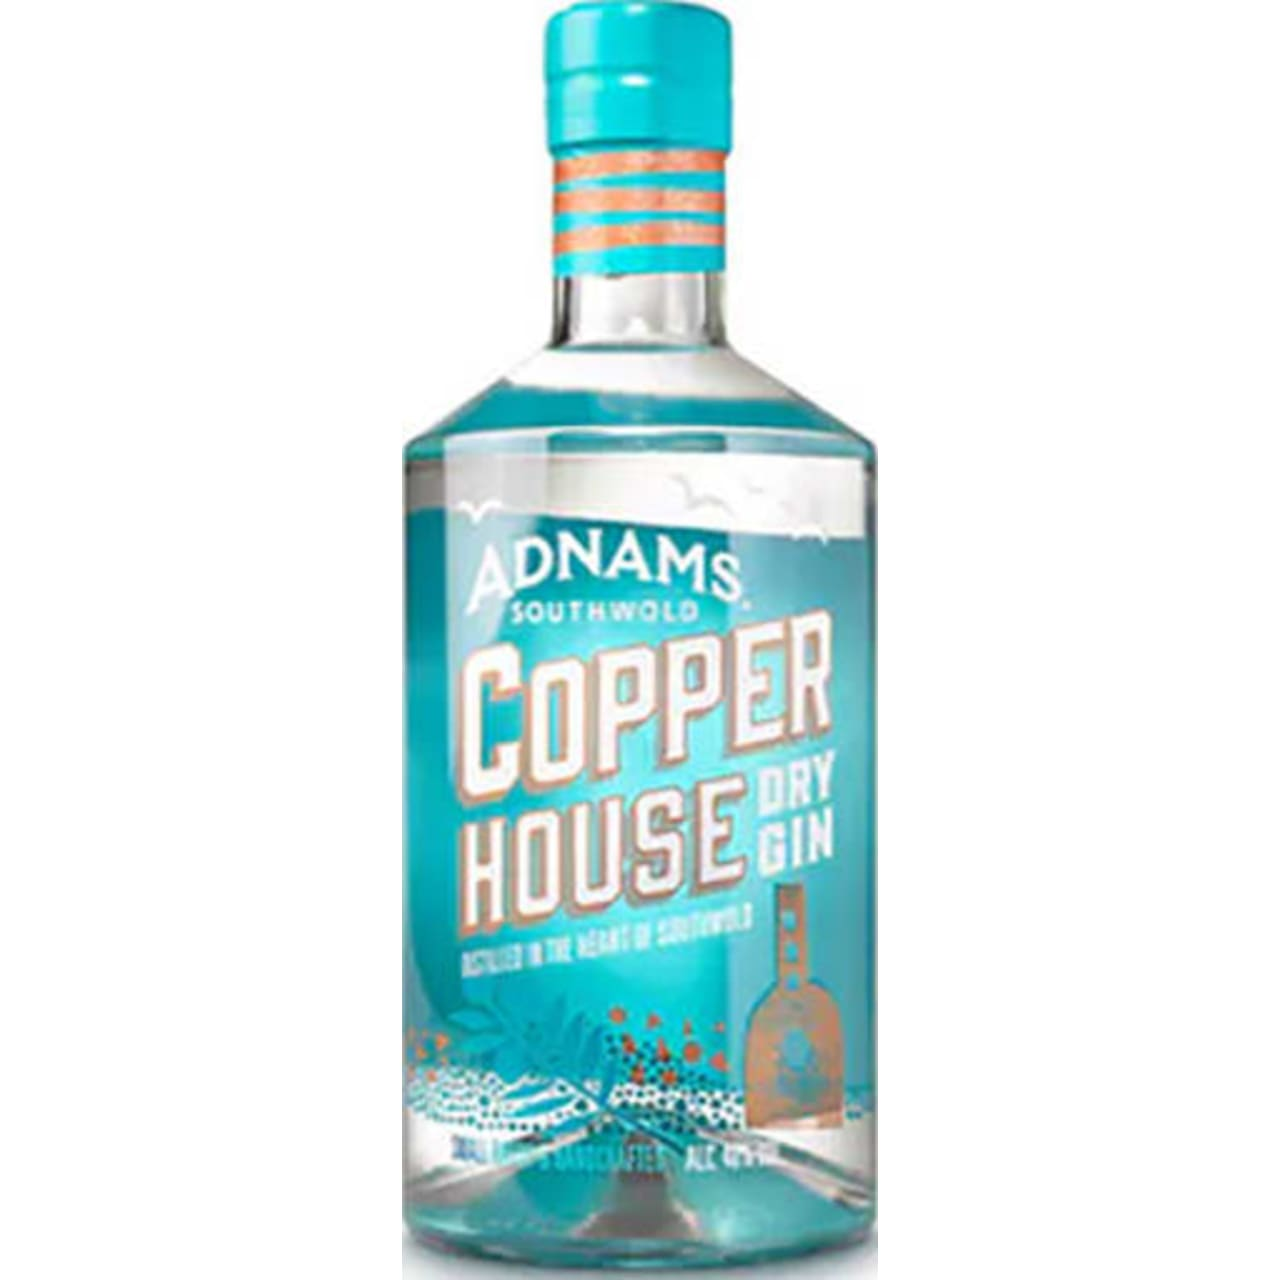 Product Image - Adnams Copper House Dry Gin